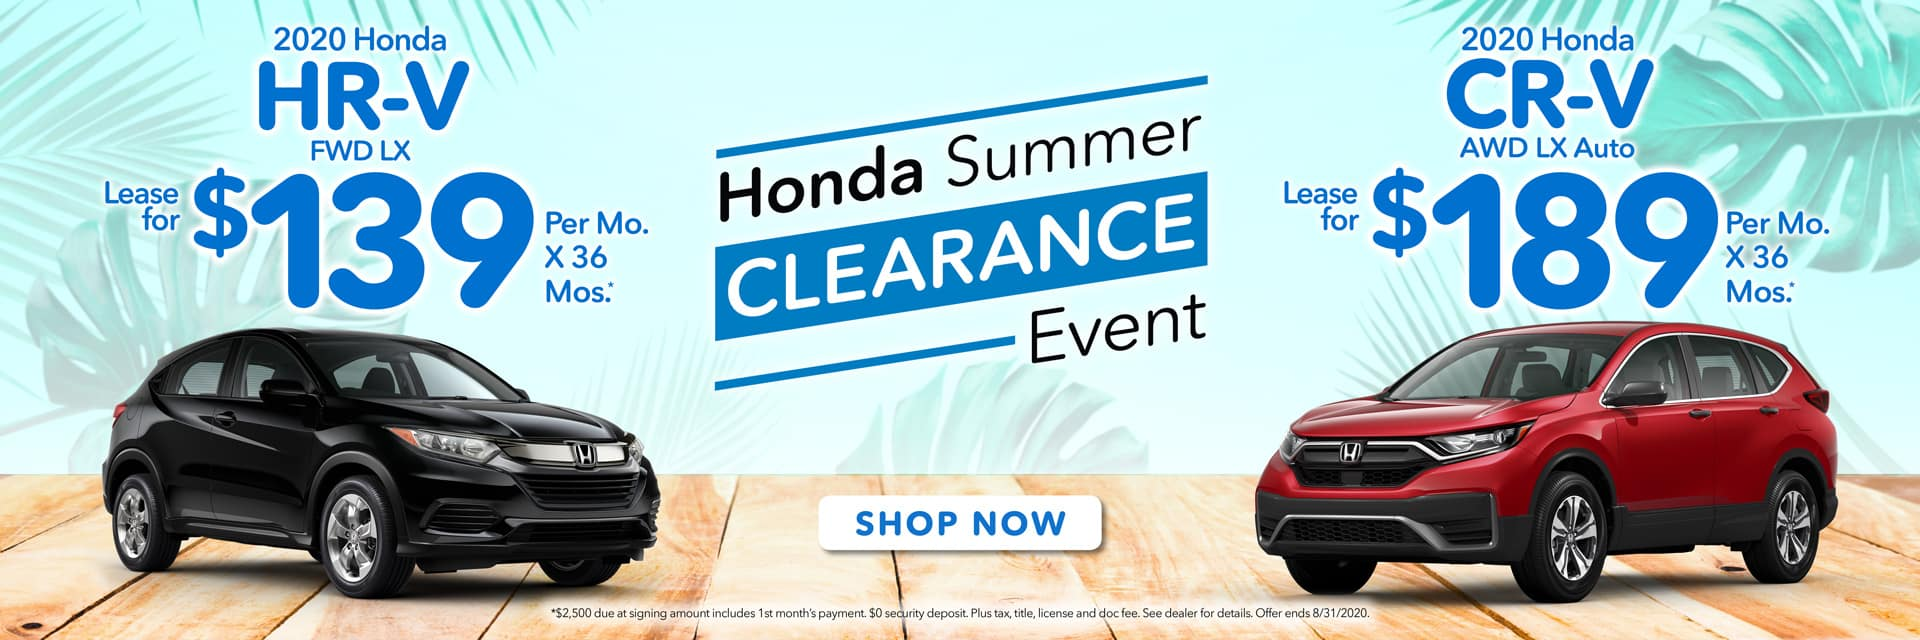 HR-V & CR-V Summer Clearance